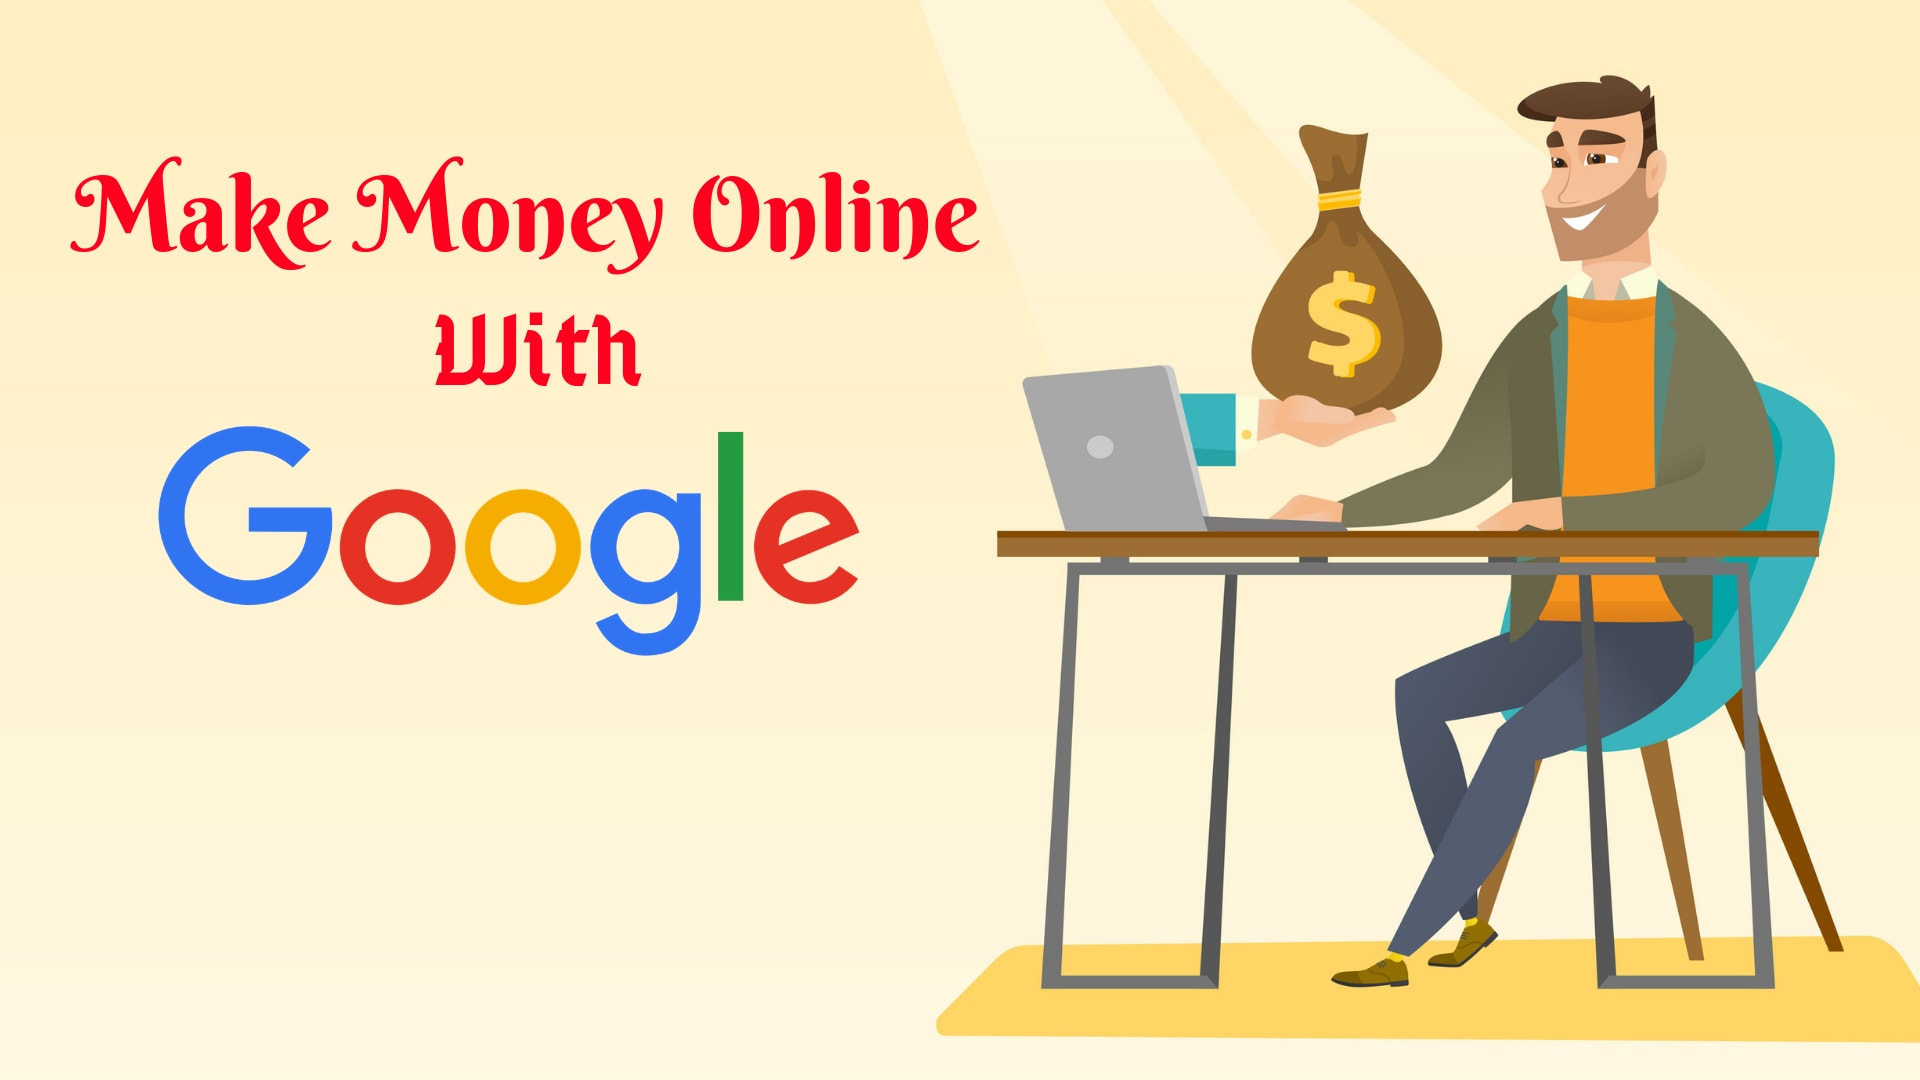 make money online with google - 10 Legit Ways to Make Money Online With Google